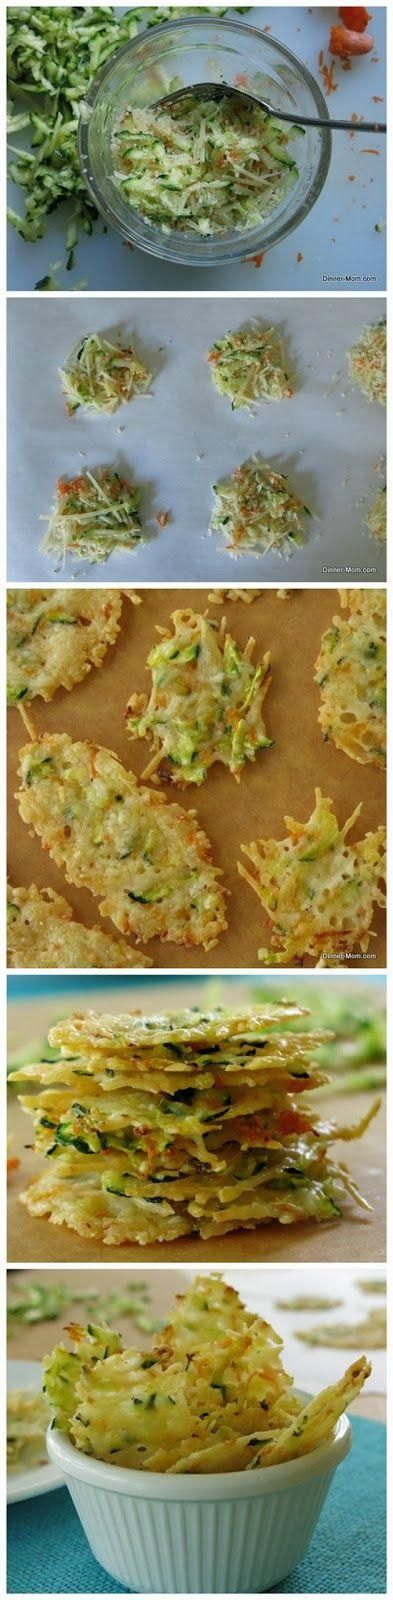 Parmesan Cheese Crisps with Zucchini and Carrots by thedinnermom #Appetizer Zucchini #Carrots #Parmesan